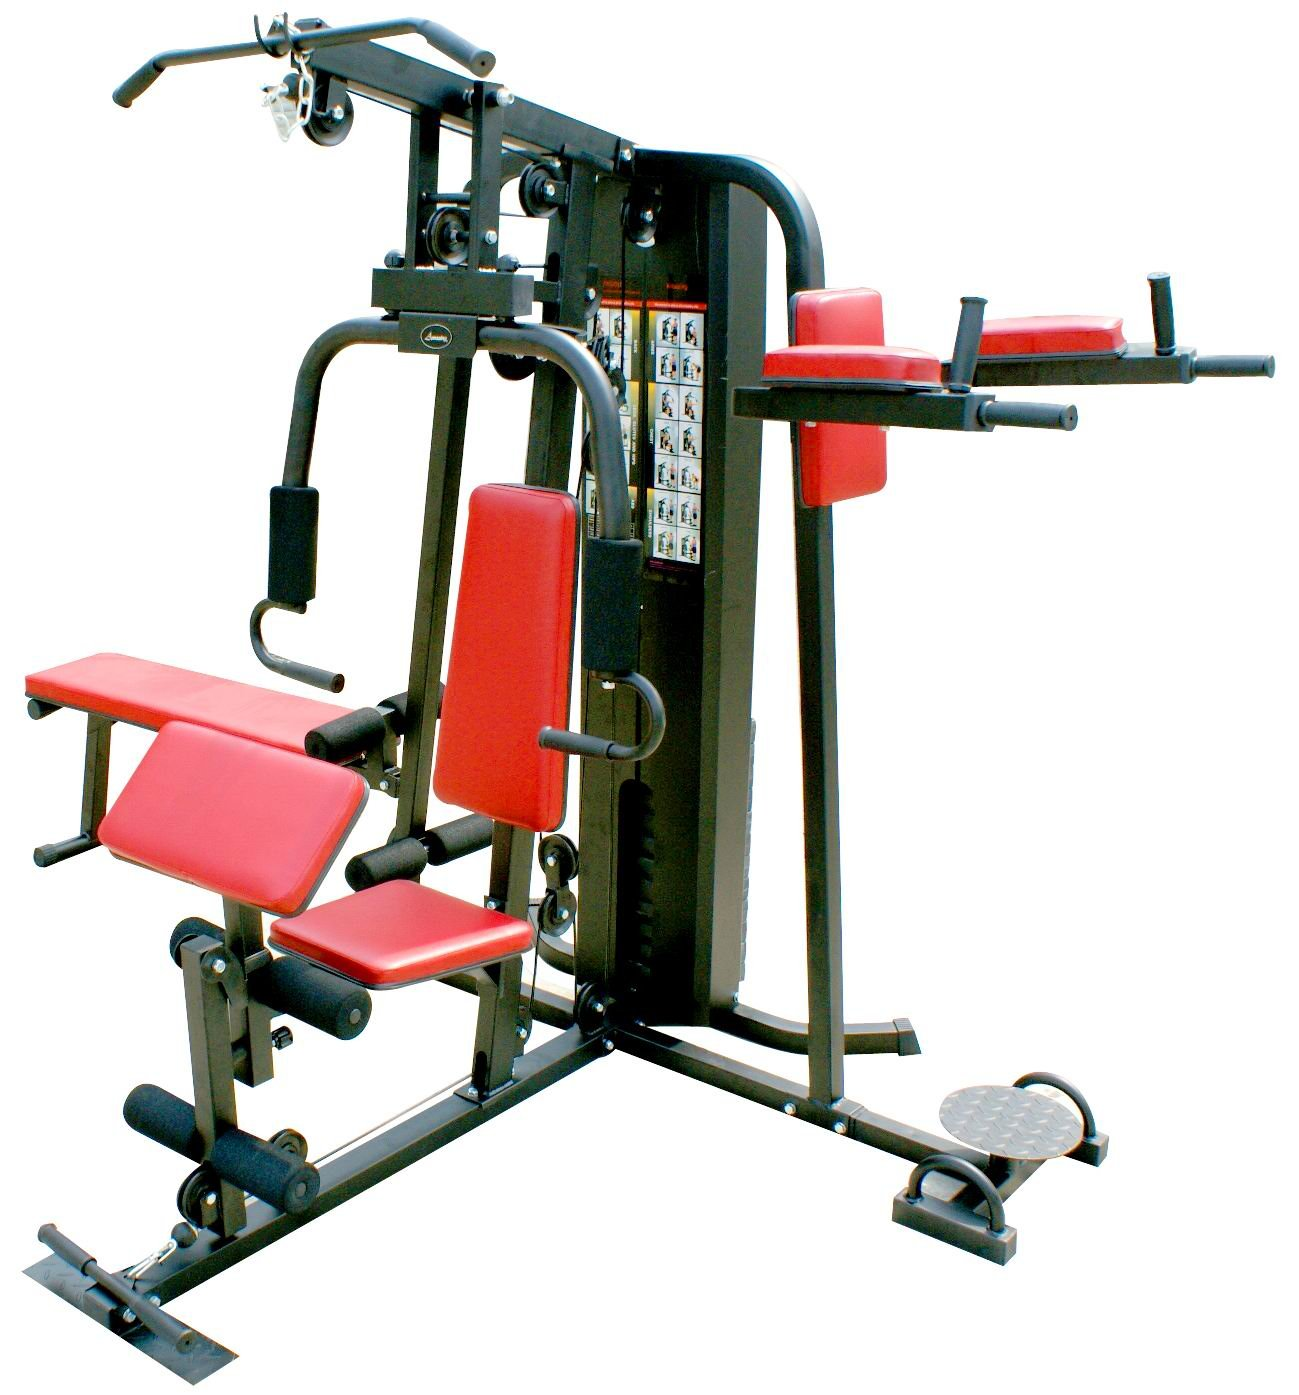 Top Exercise Equipment: Exercise Equipment In San Ramon